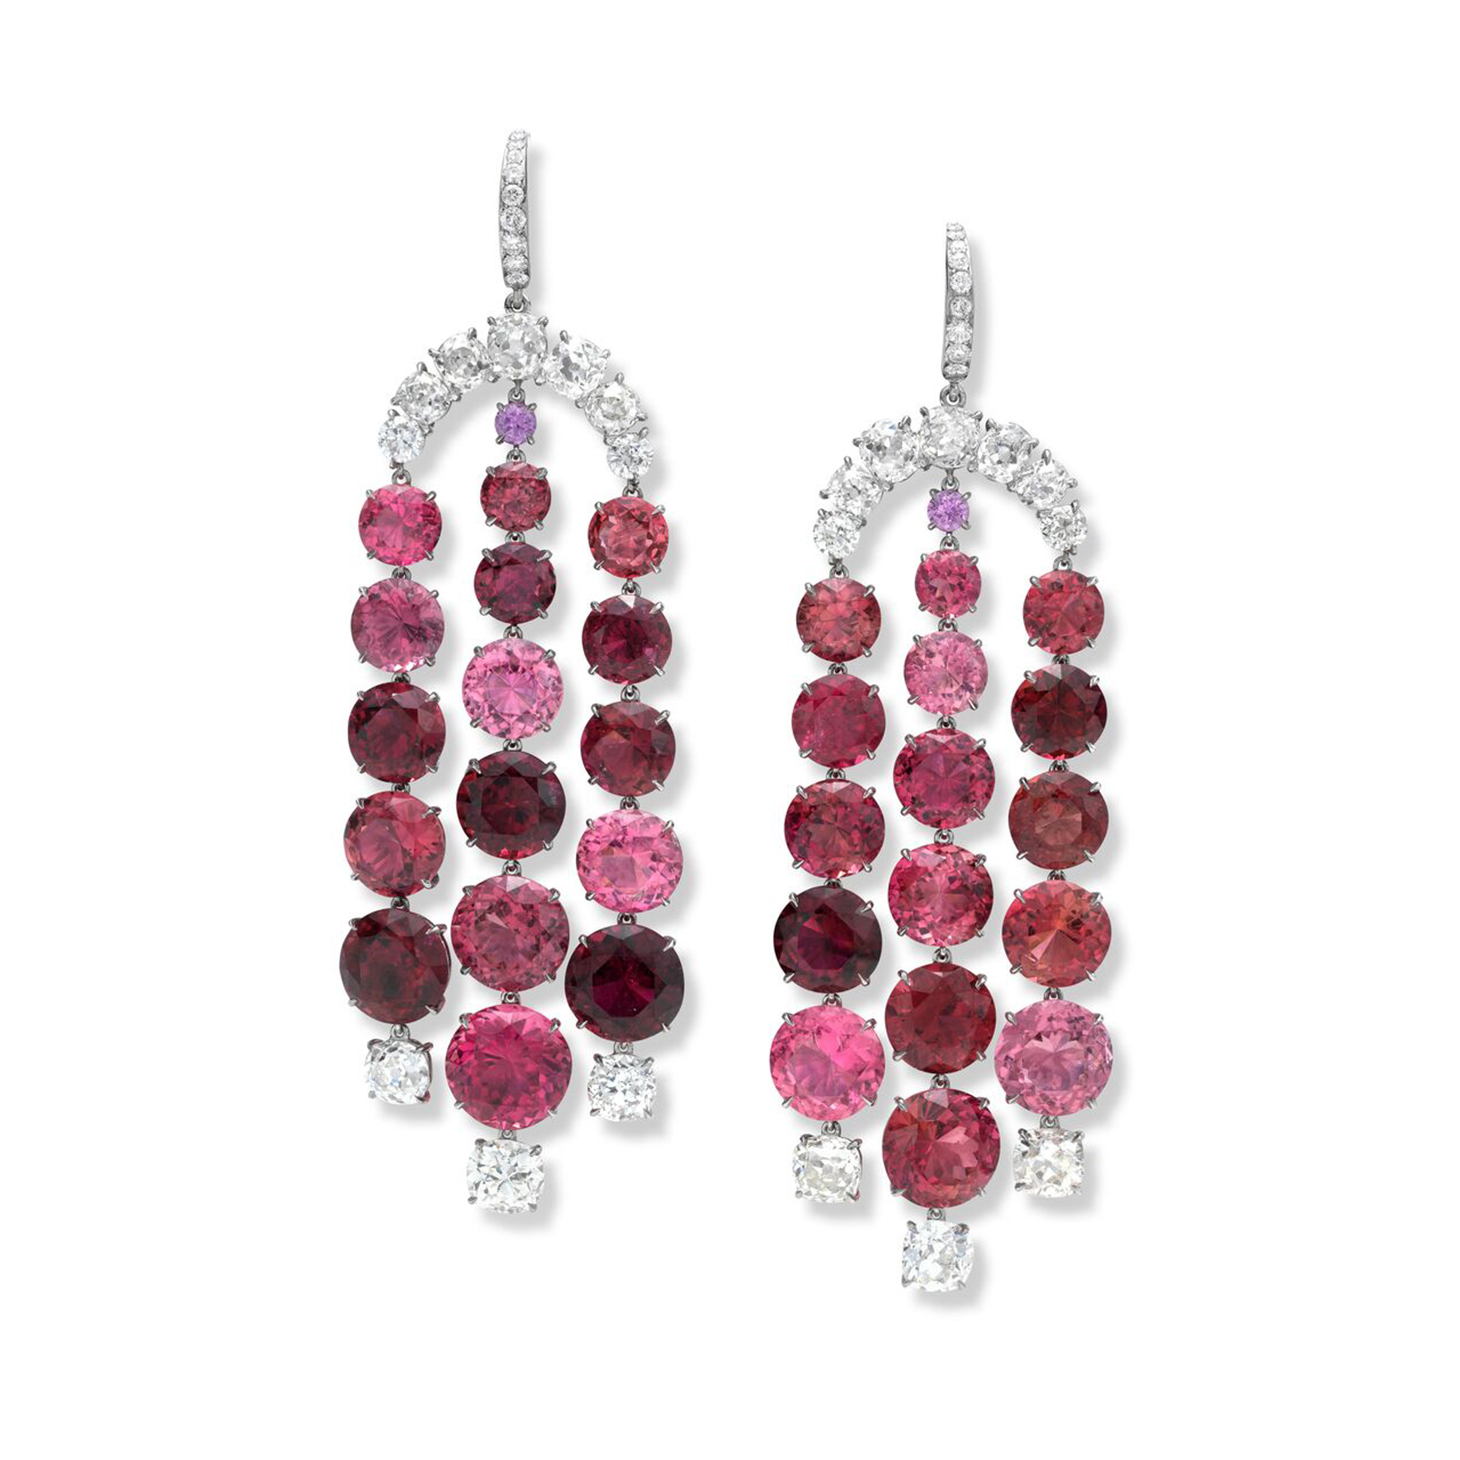 A Pair of Rubellite Tourmaline and Diamond Ear Pendants, by SABBA